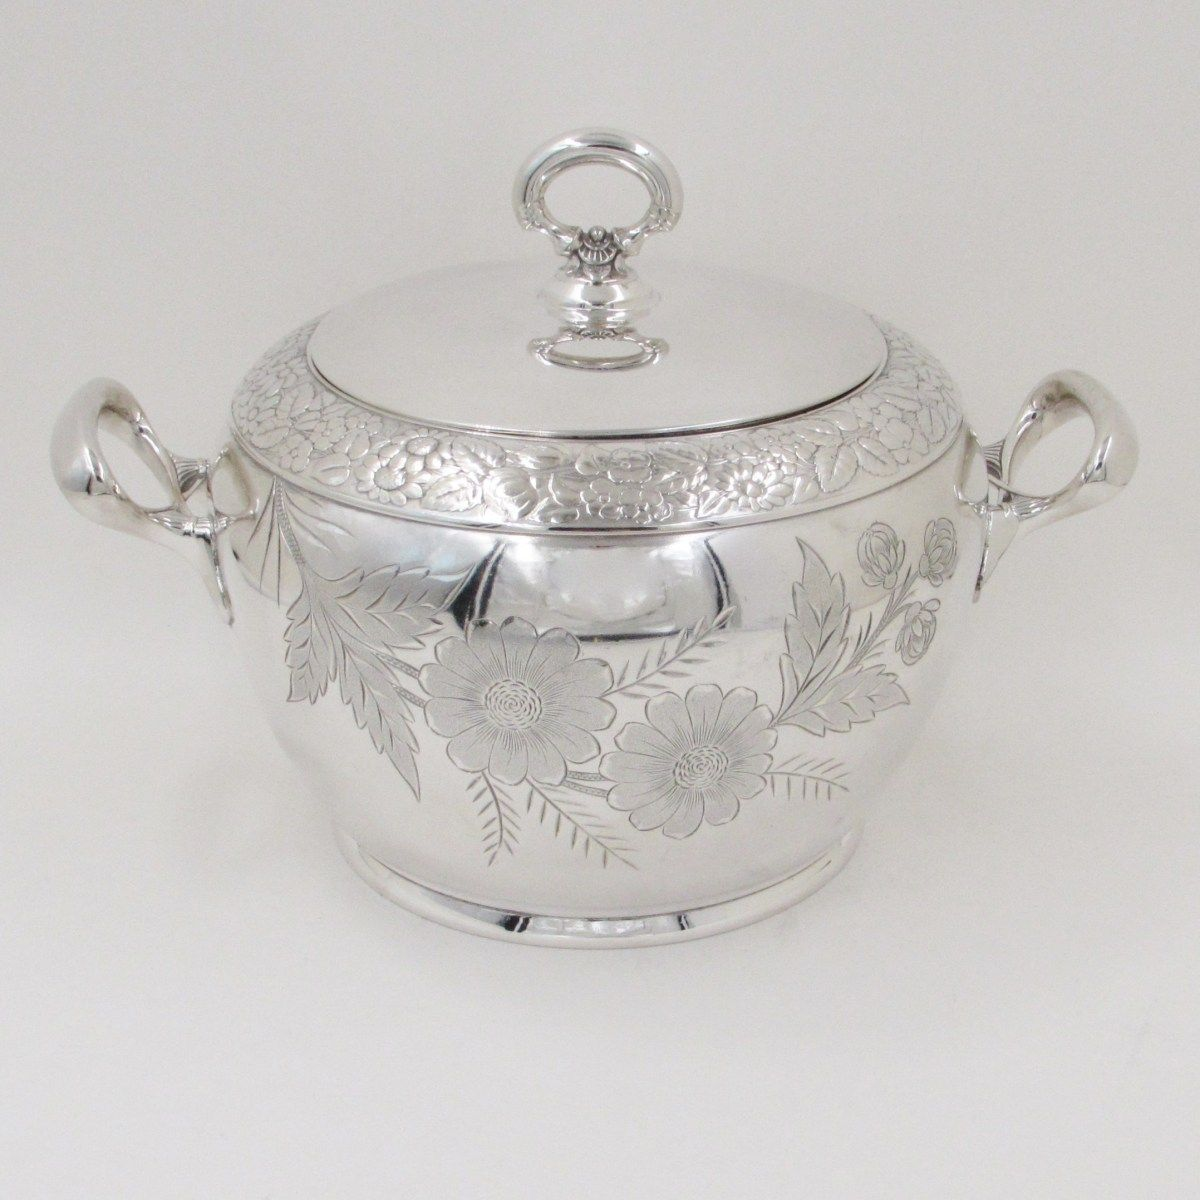 Antique Silver Plate 8'' Soup Tureen with Lid Circa 1890